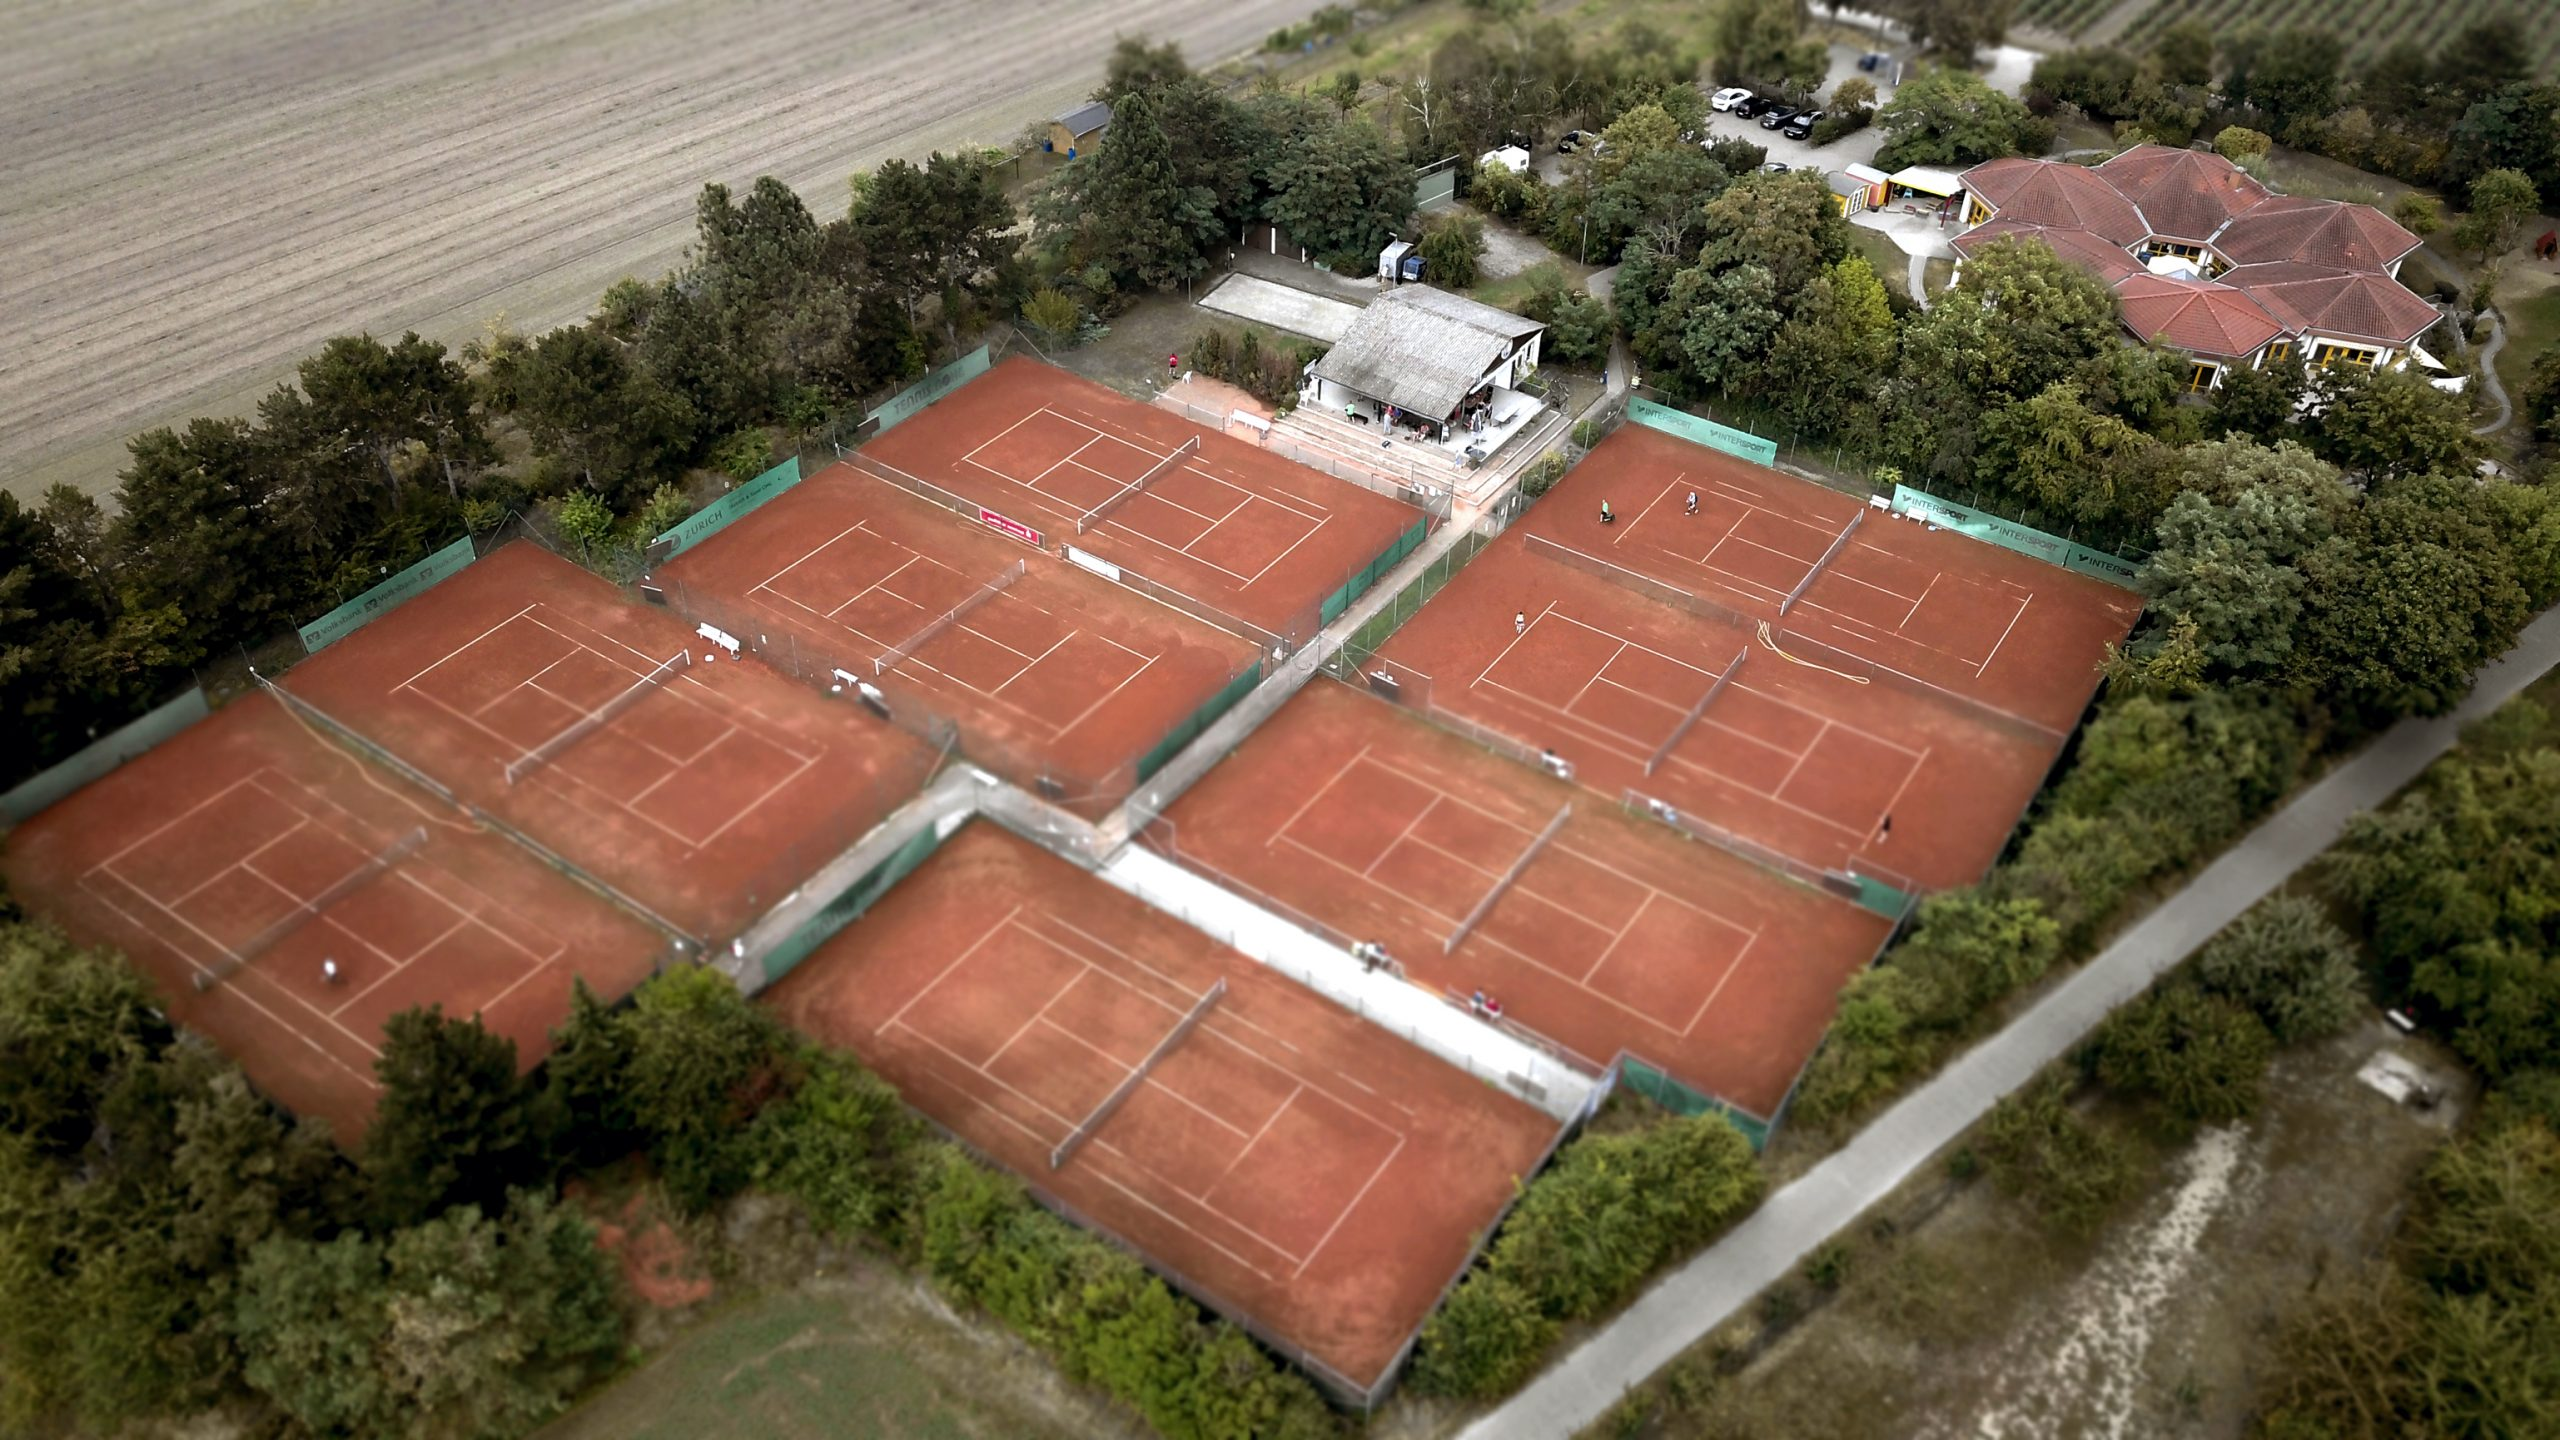 Tennisverein Lußheim